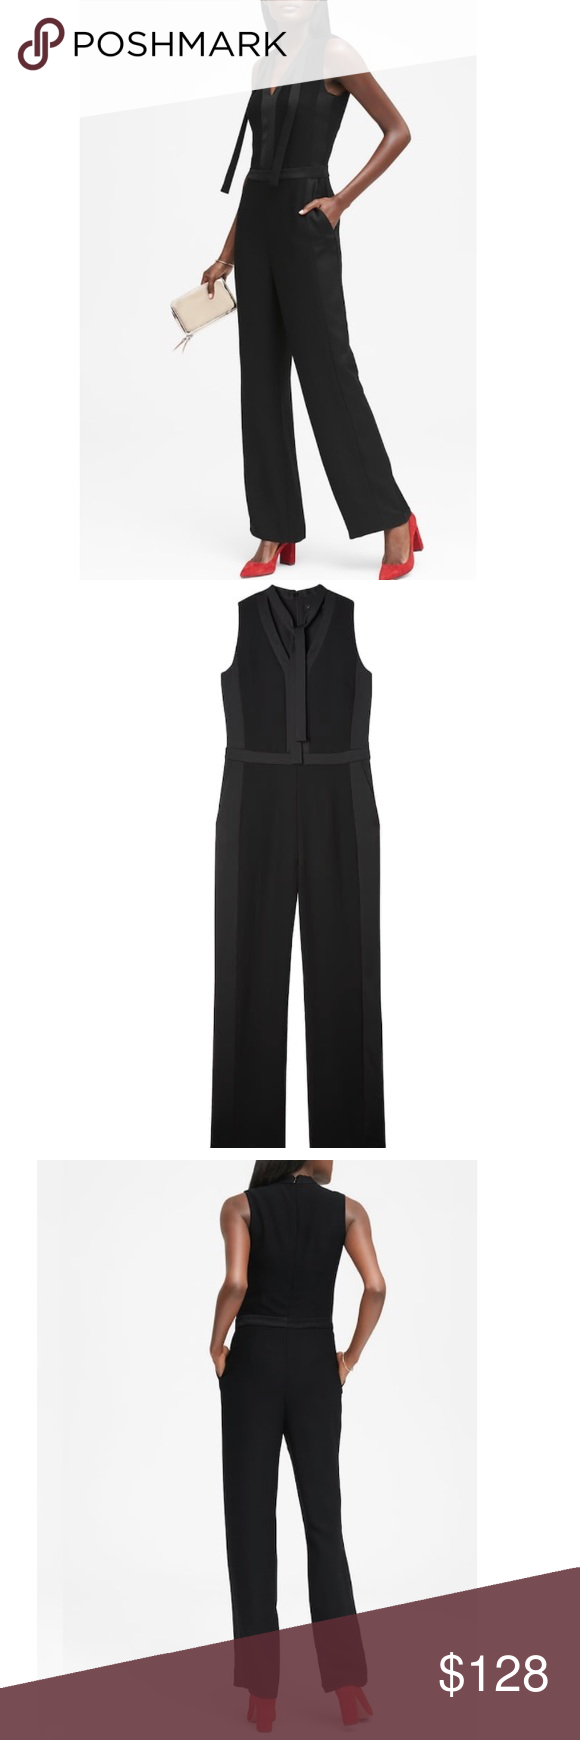 27874b9152c NWT  Banana Republic  Tieneck Tuxedo Jumpsuit Sz0P New with tag Never worn  Size 0 petite in Black Currently sold out in stores and online Banana  Republic ...